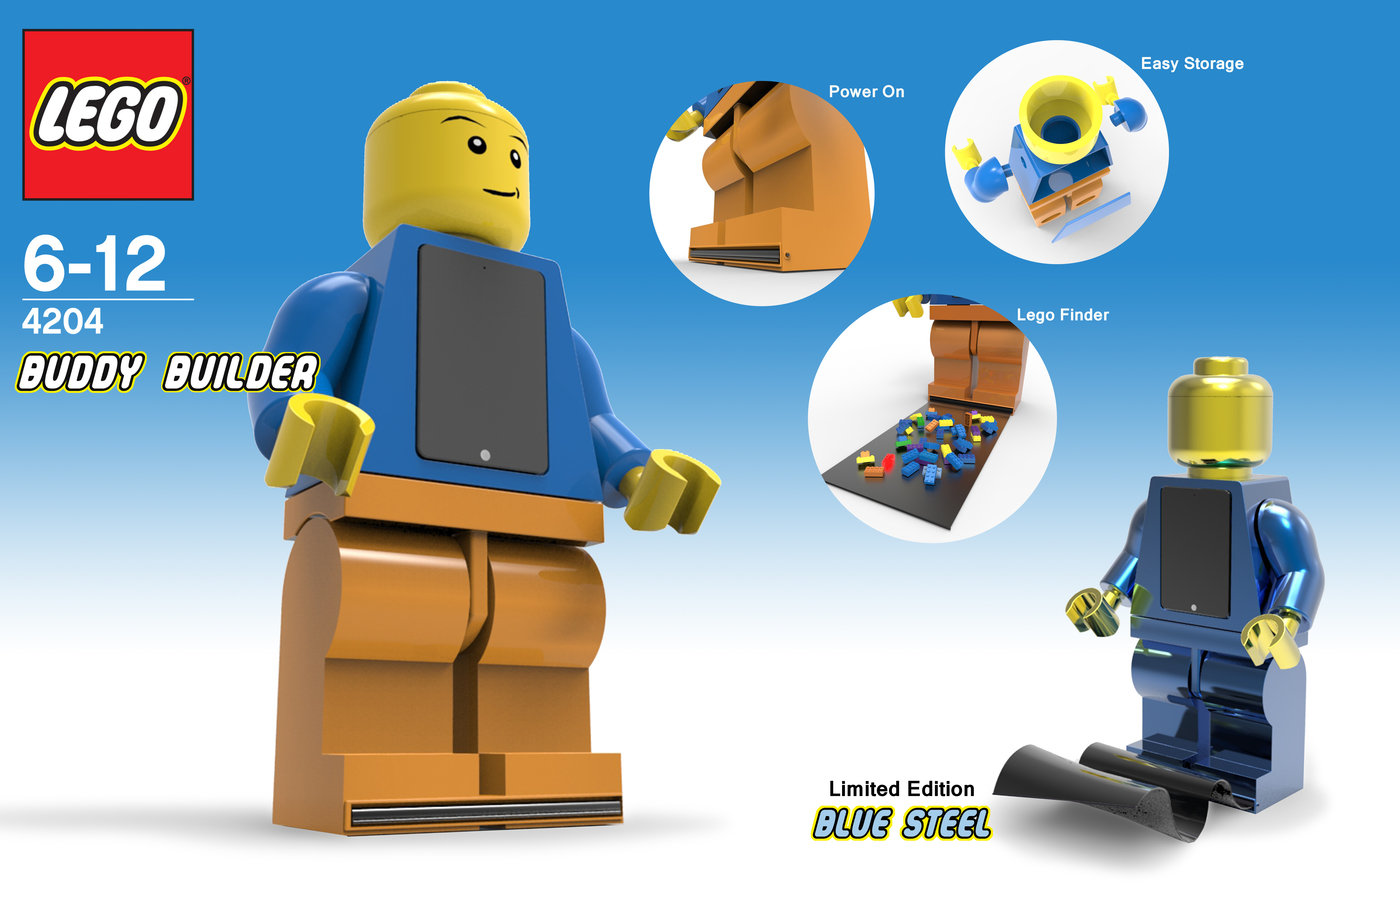 Buddy Builder   Lego Finder Scanner by Tom Guess at Coroflot com Created using Rhino and Keyshot